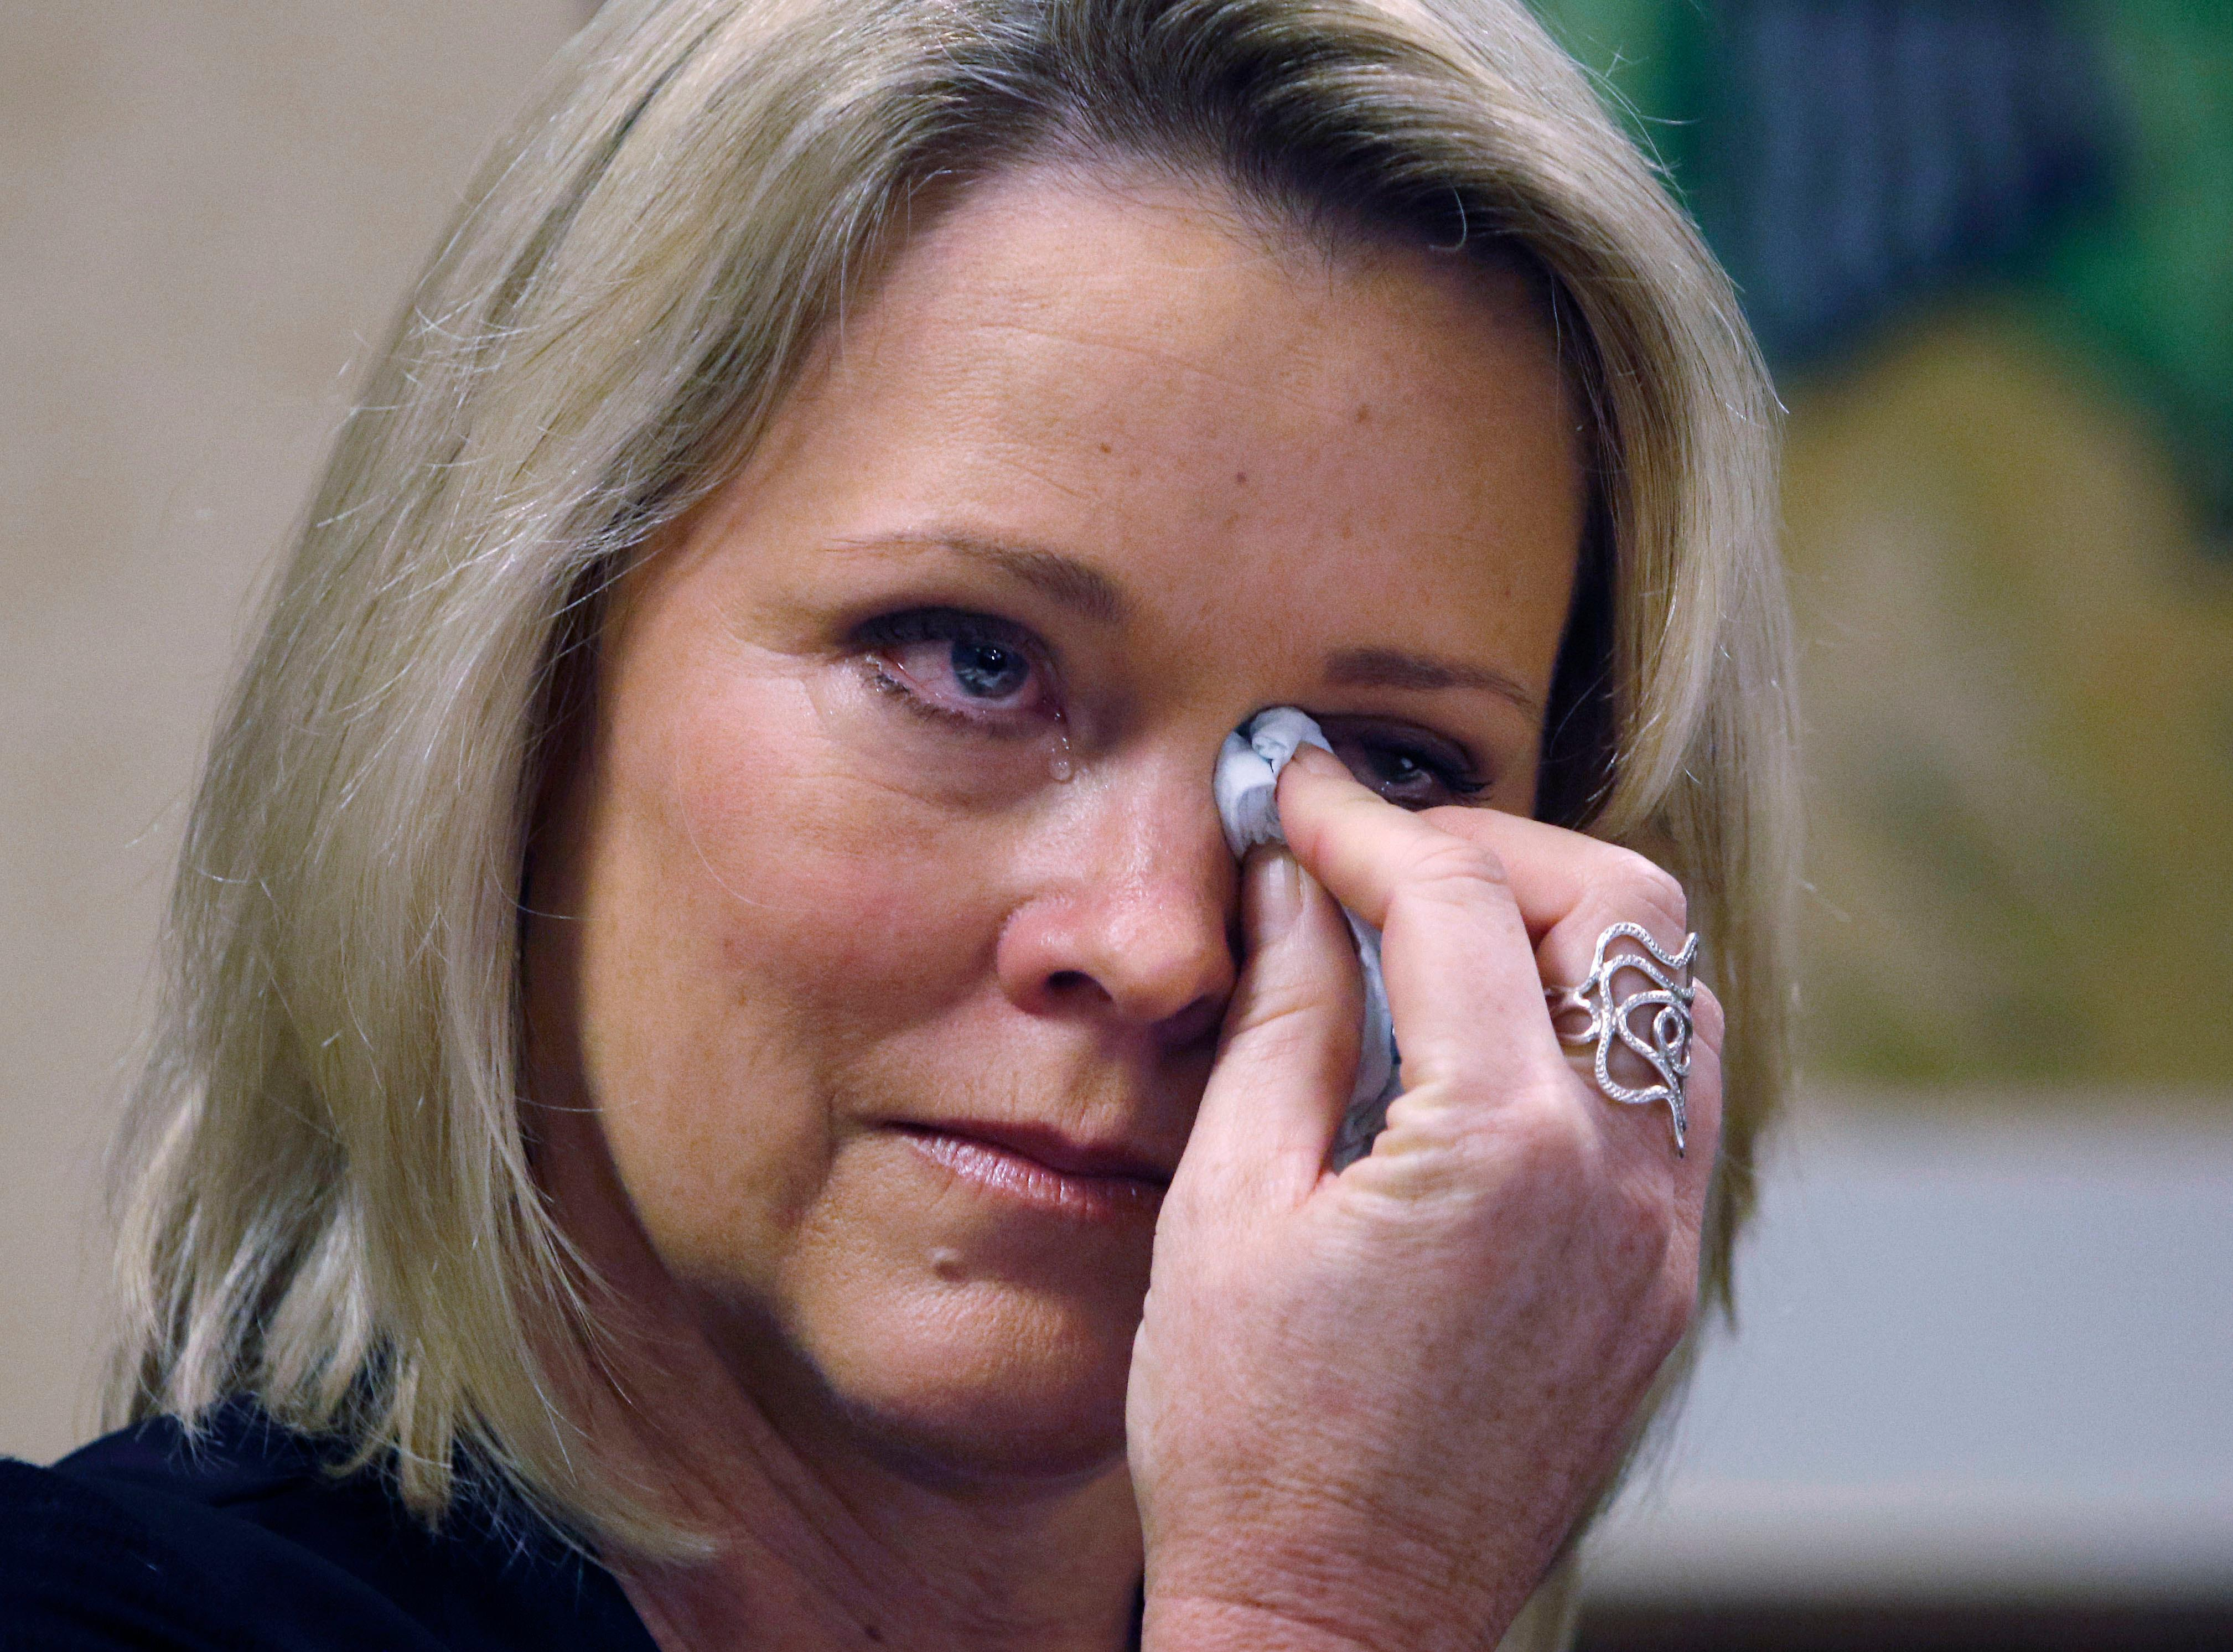 Former Boston television news anchor Heather Unruh wipes tears while speaking Wednesday, Nov. 8, 2017, in Boston, about the alleged sexual assault of her teenage son by actor Kevin Spacey in the summer of 2016 on Nantucket. (AP Photo/Bill Sikes)